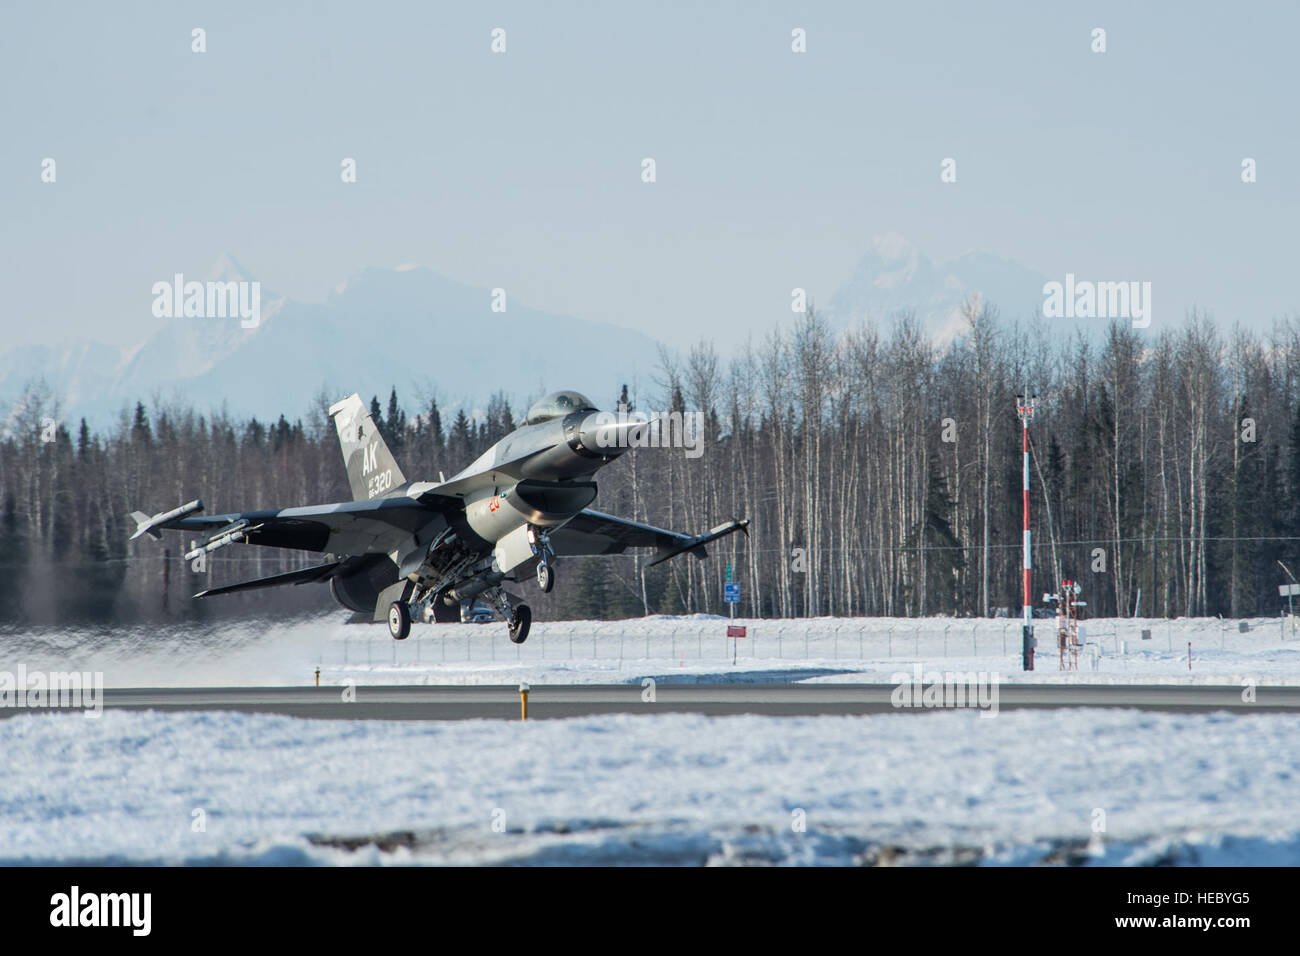 An F-16 Fighting Falcon takes off during a training sortie April 3, 2014 at Eielson Air Force Base, Alaska. Regular Stock Photo